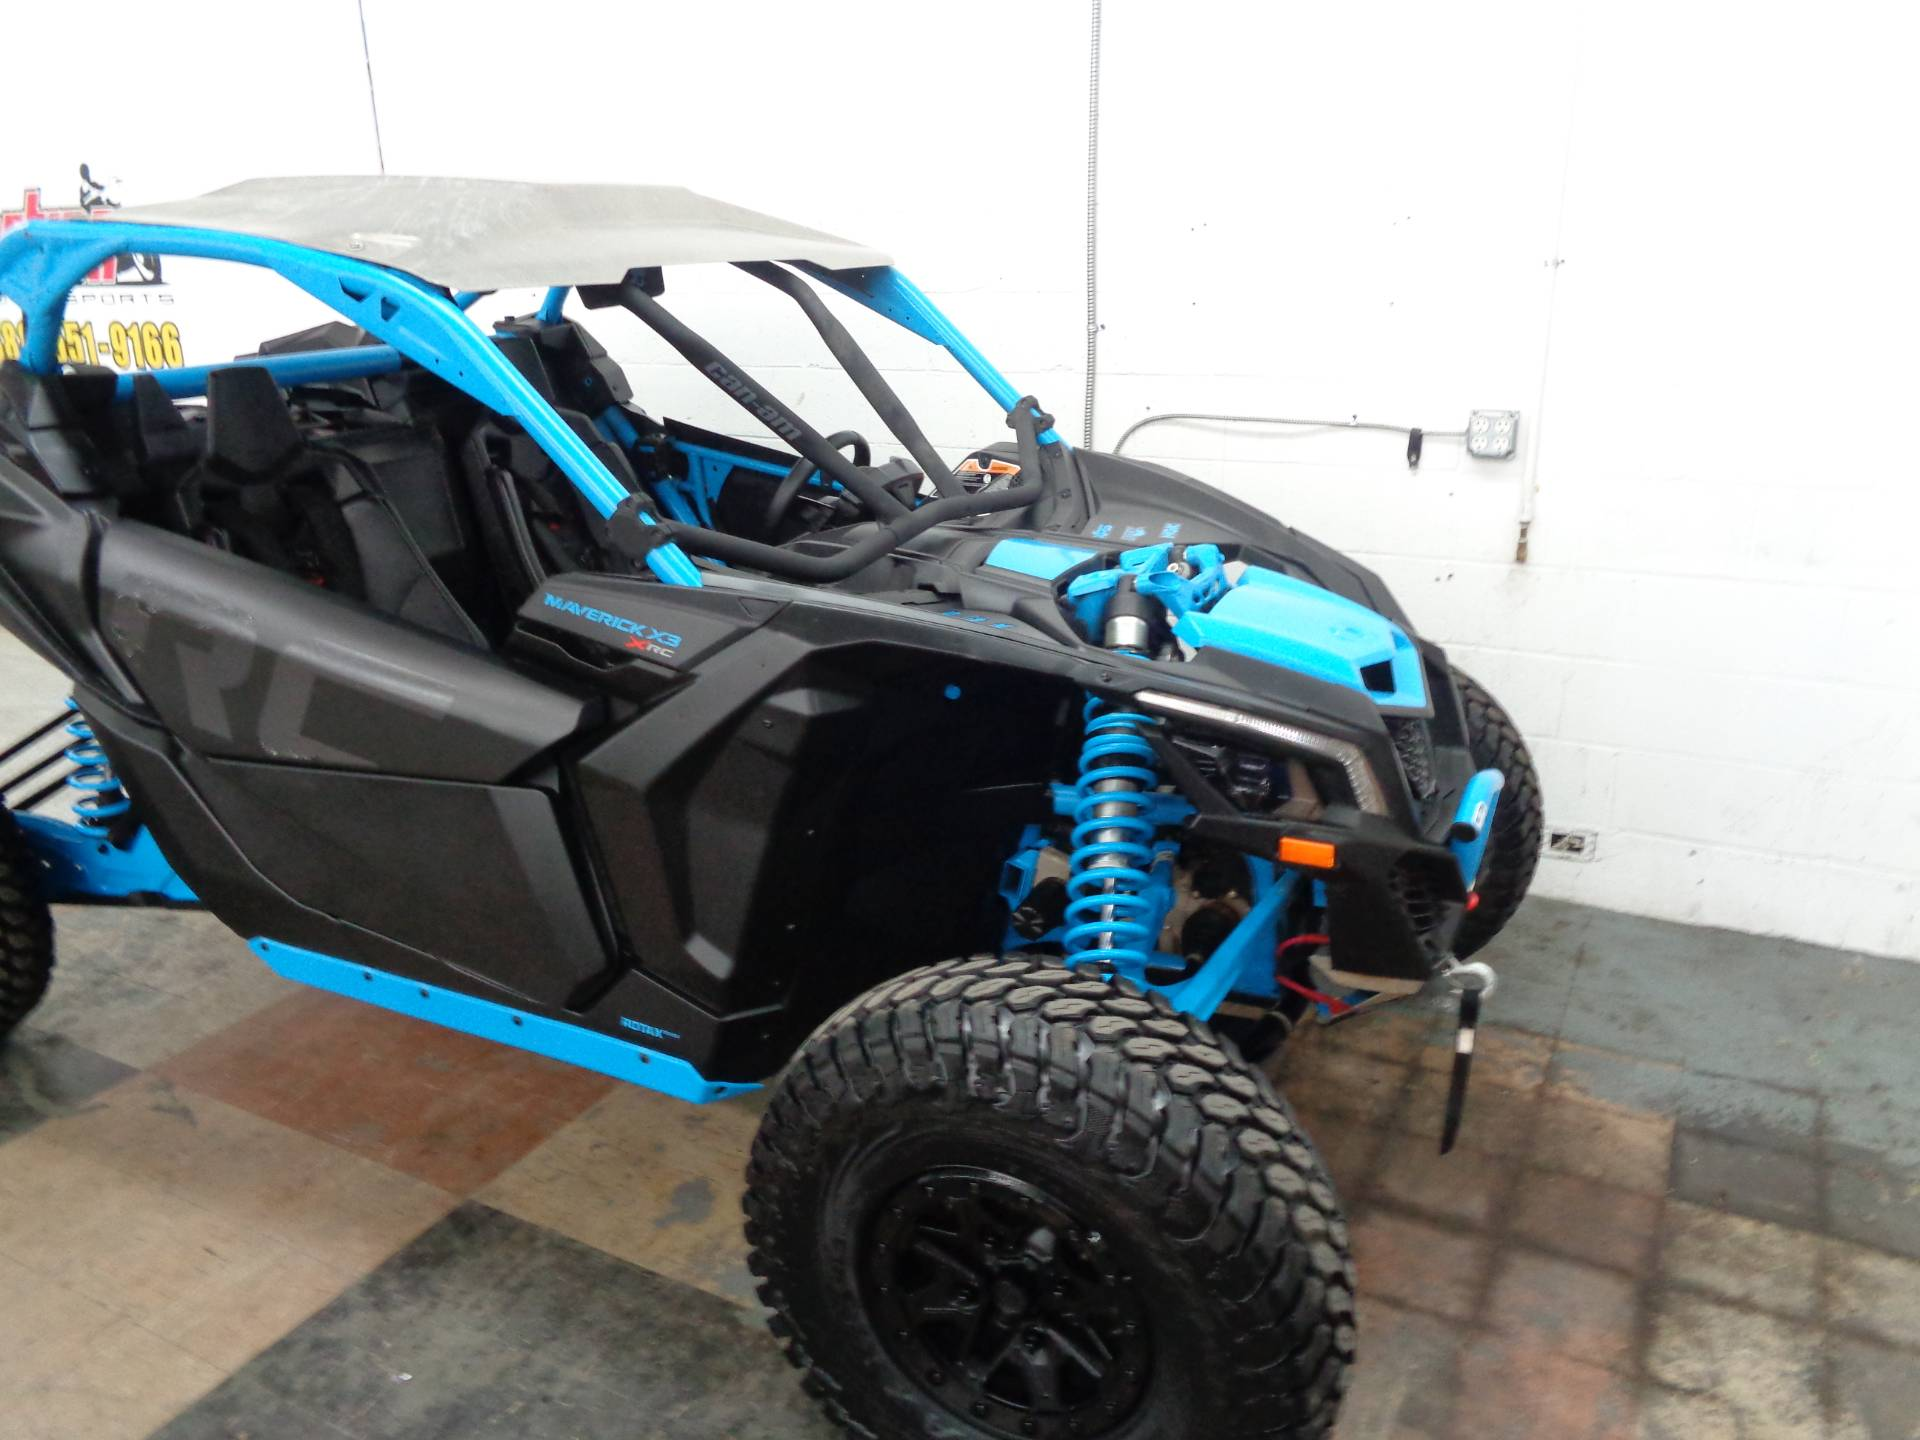 2018 Can-Am Maverick X3 X rc Turbo R in Tulsa, Oklahoma - Photo 3